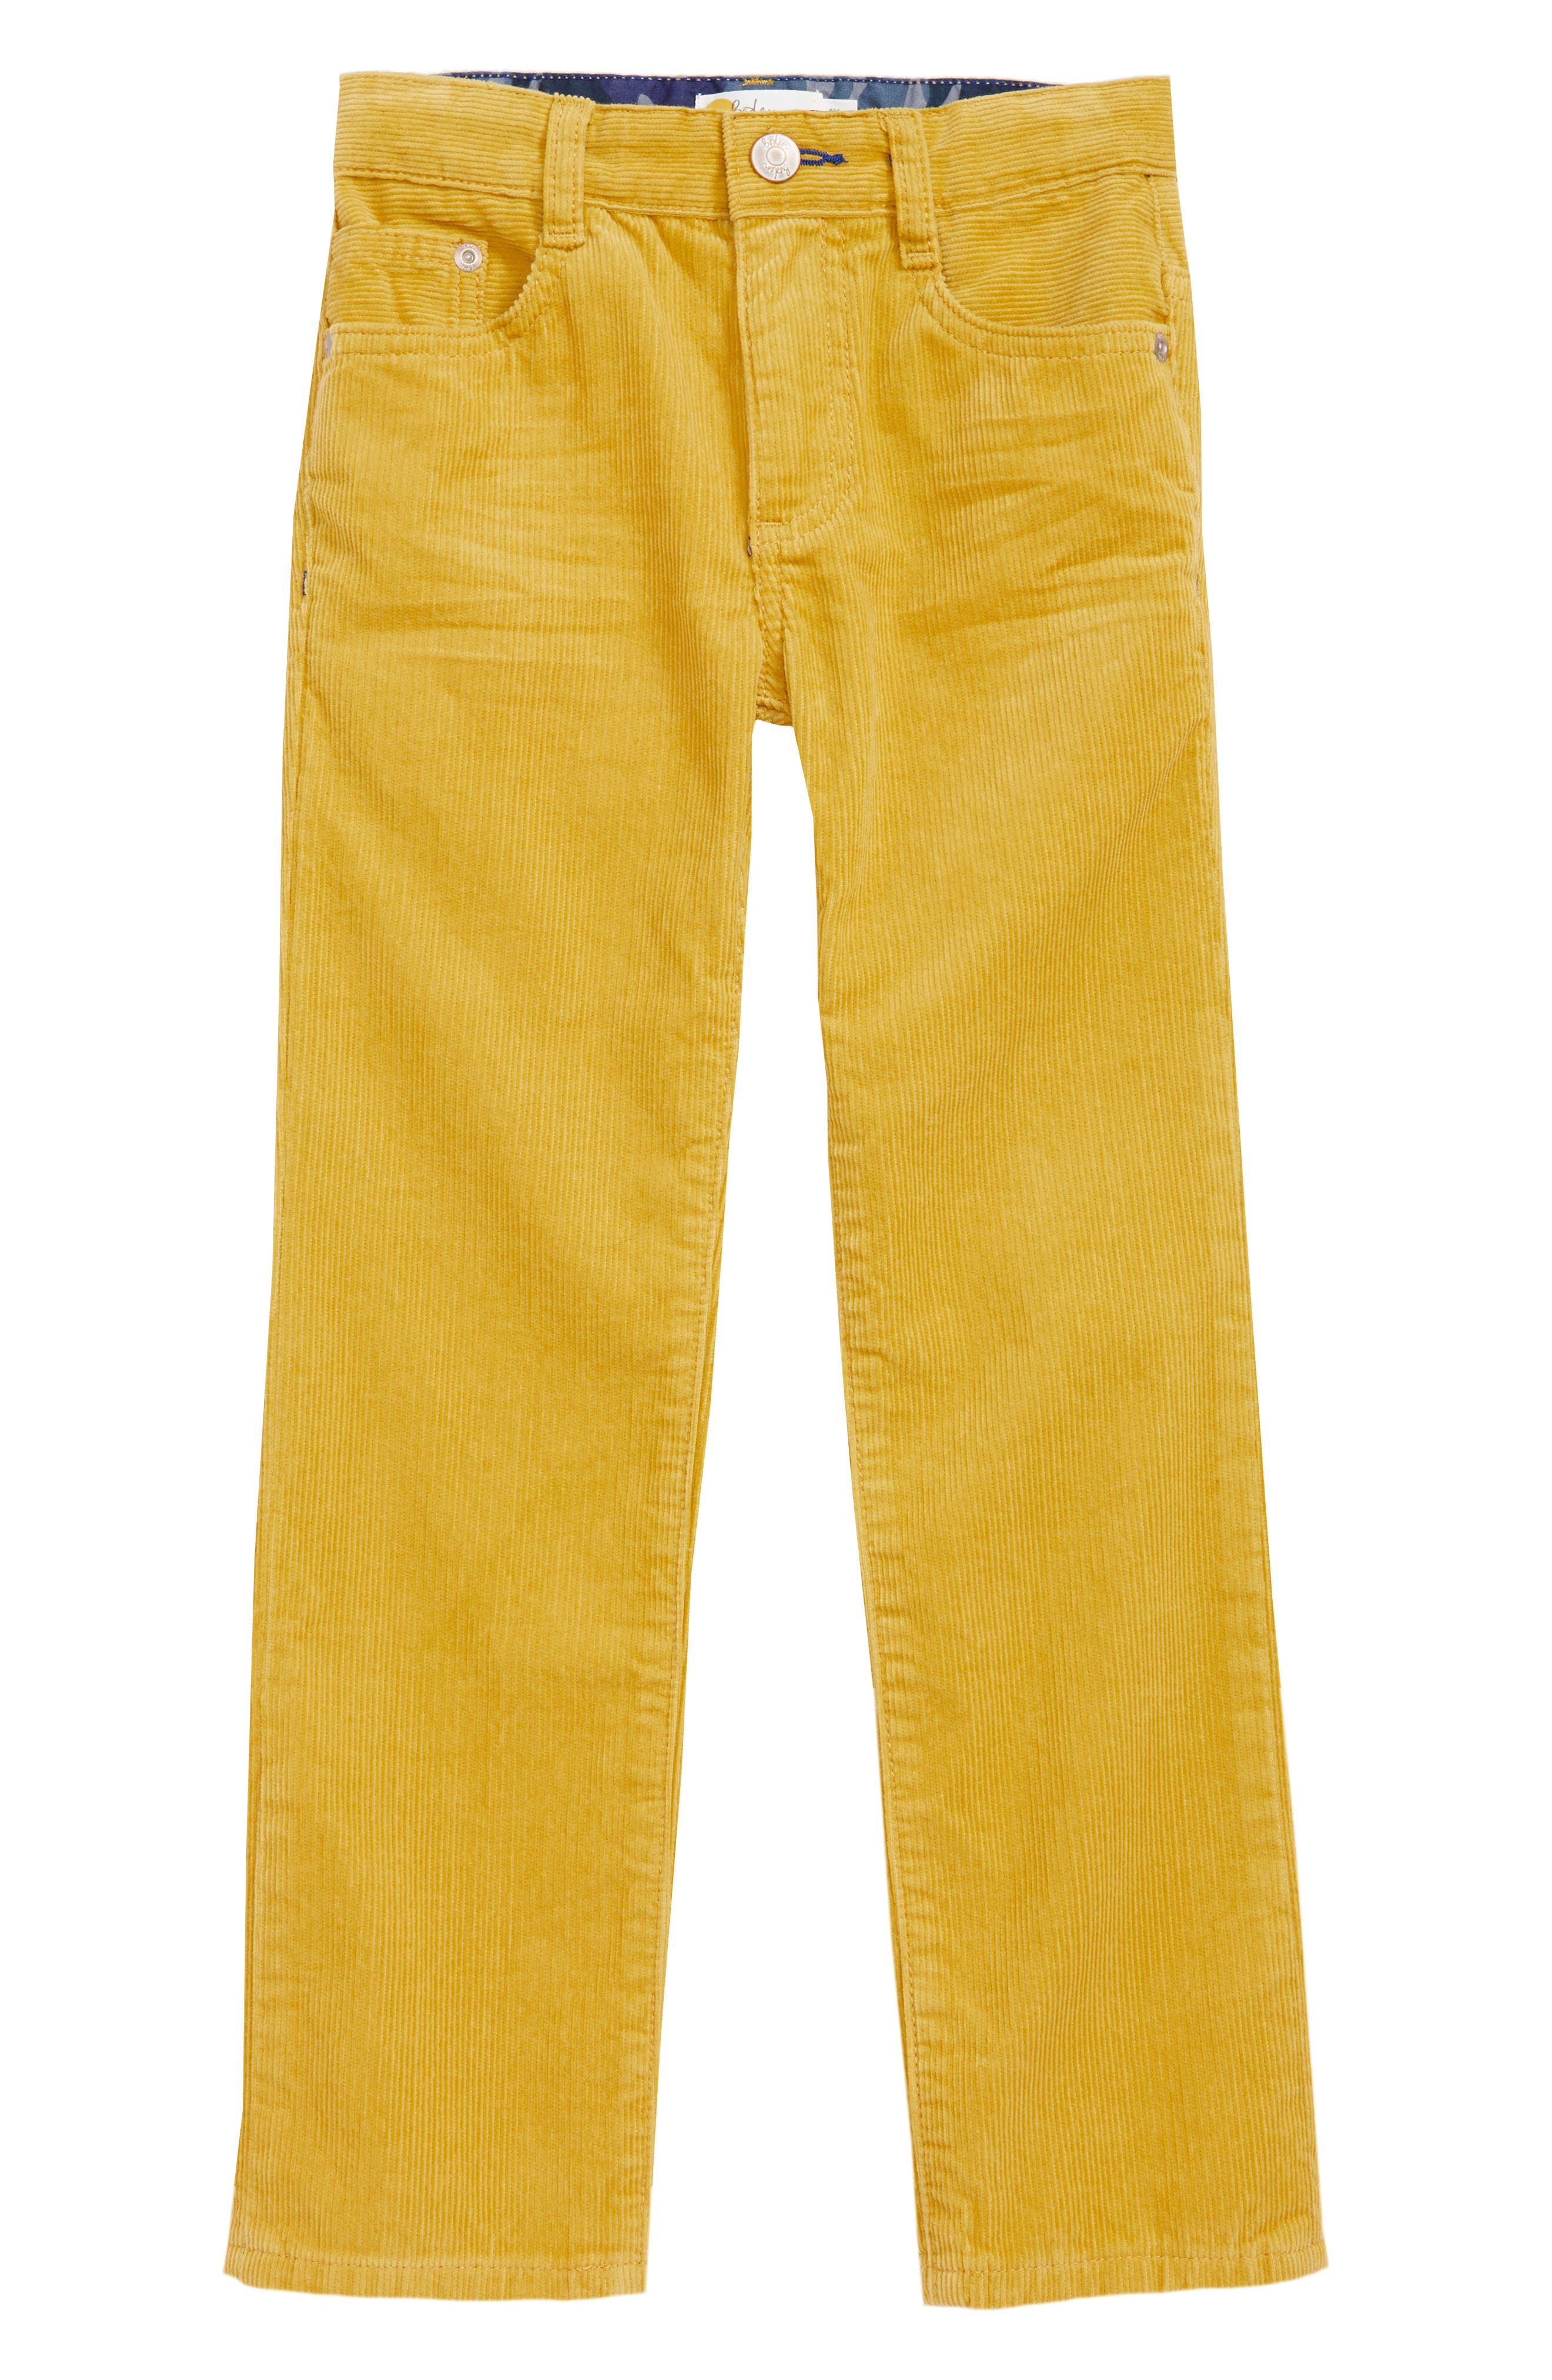 Slim Corduroy Jeans,                             Main thumbnail 1, color,                             SOFT LIME YELLOW